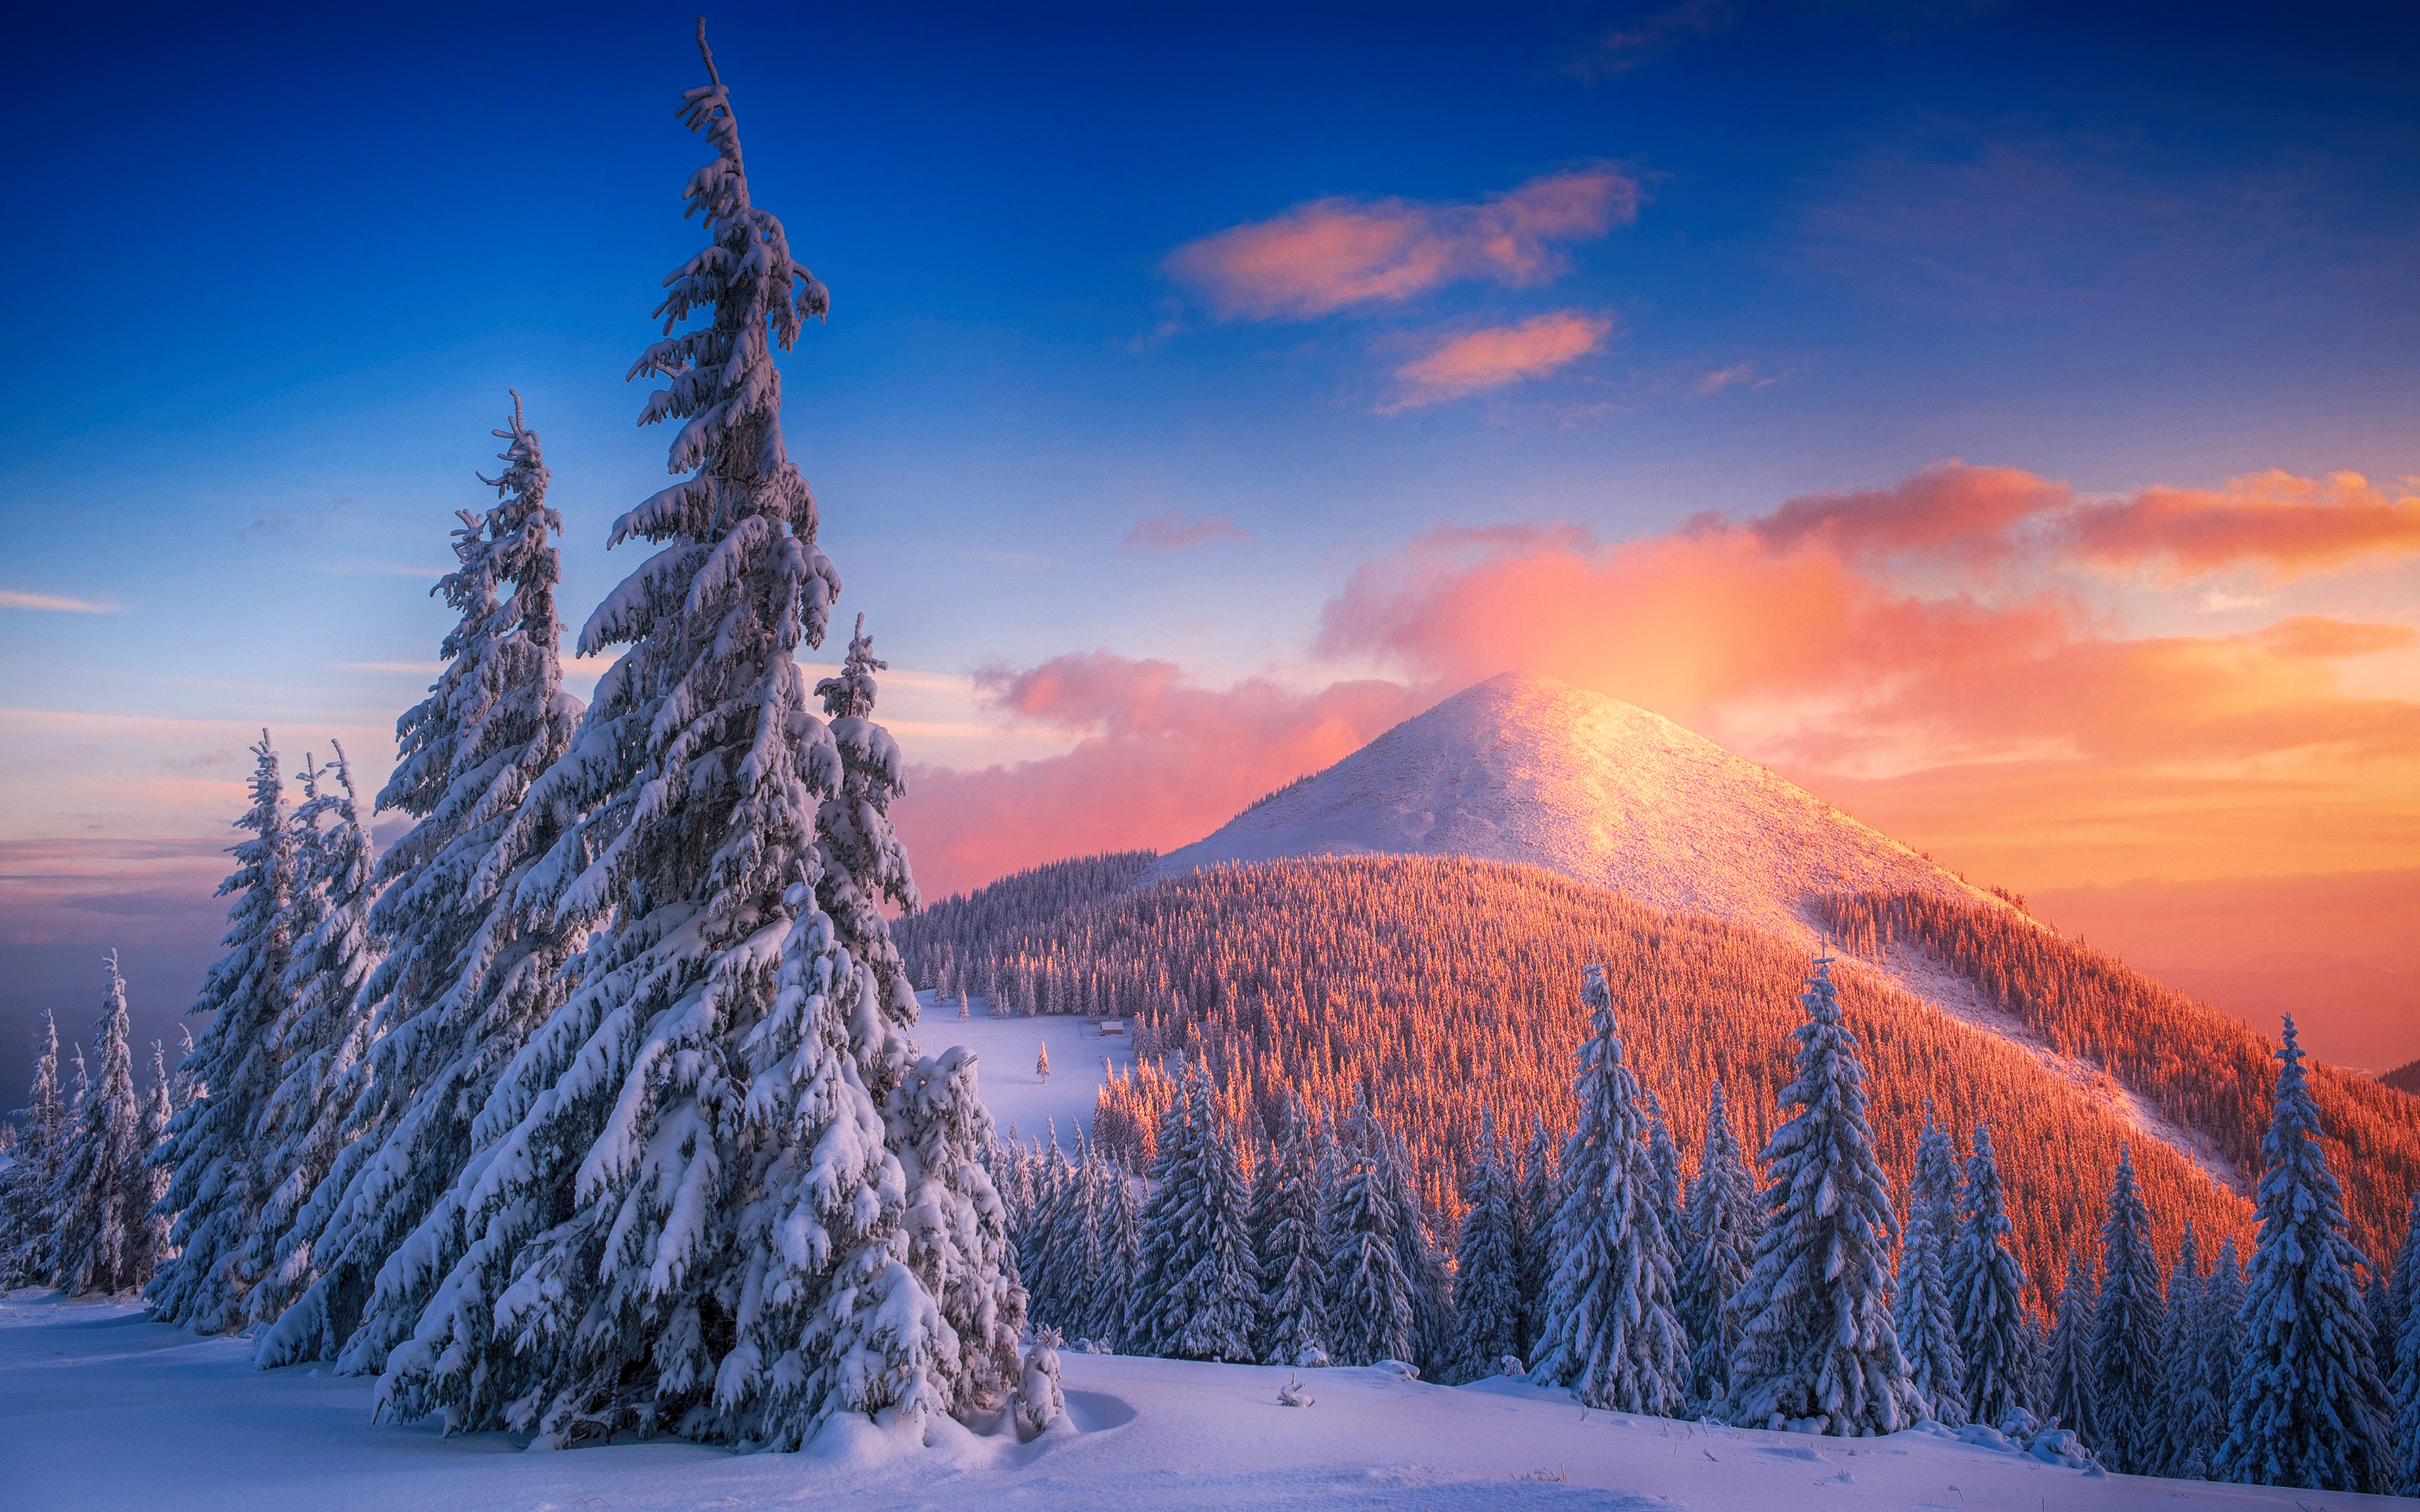 Wallpaper Snowy pine trees at sunset in mountains